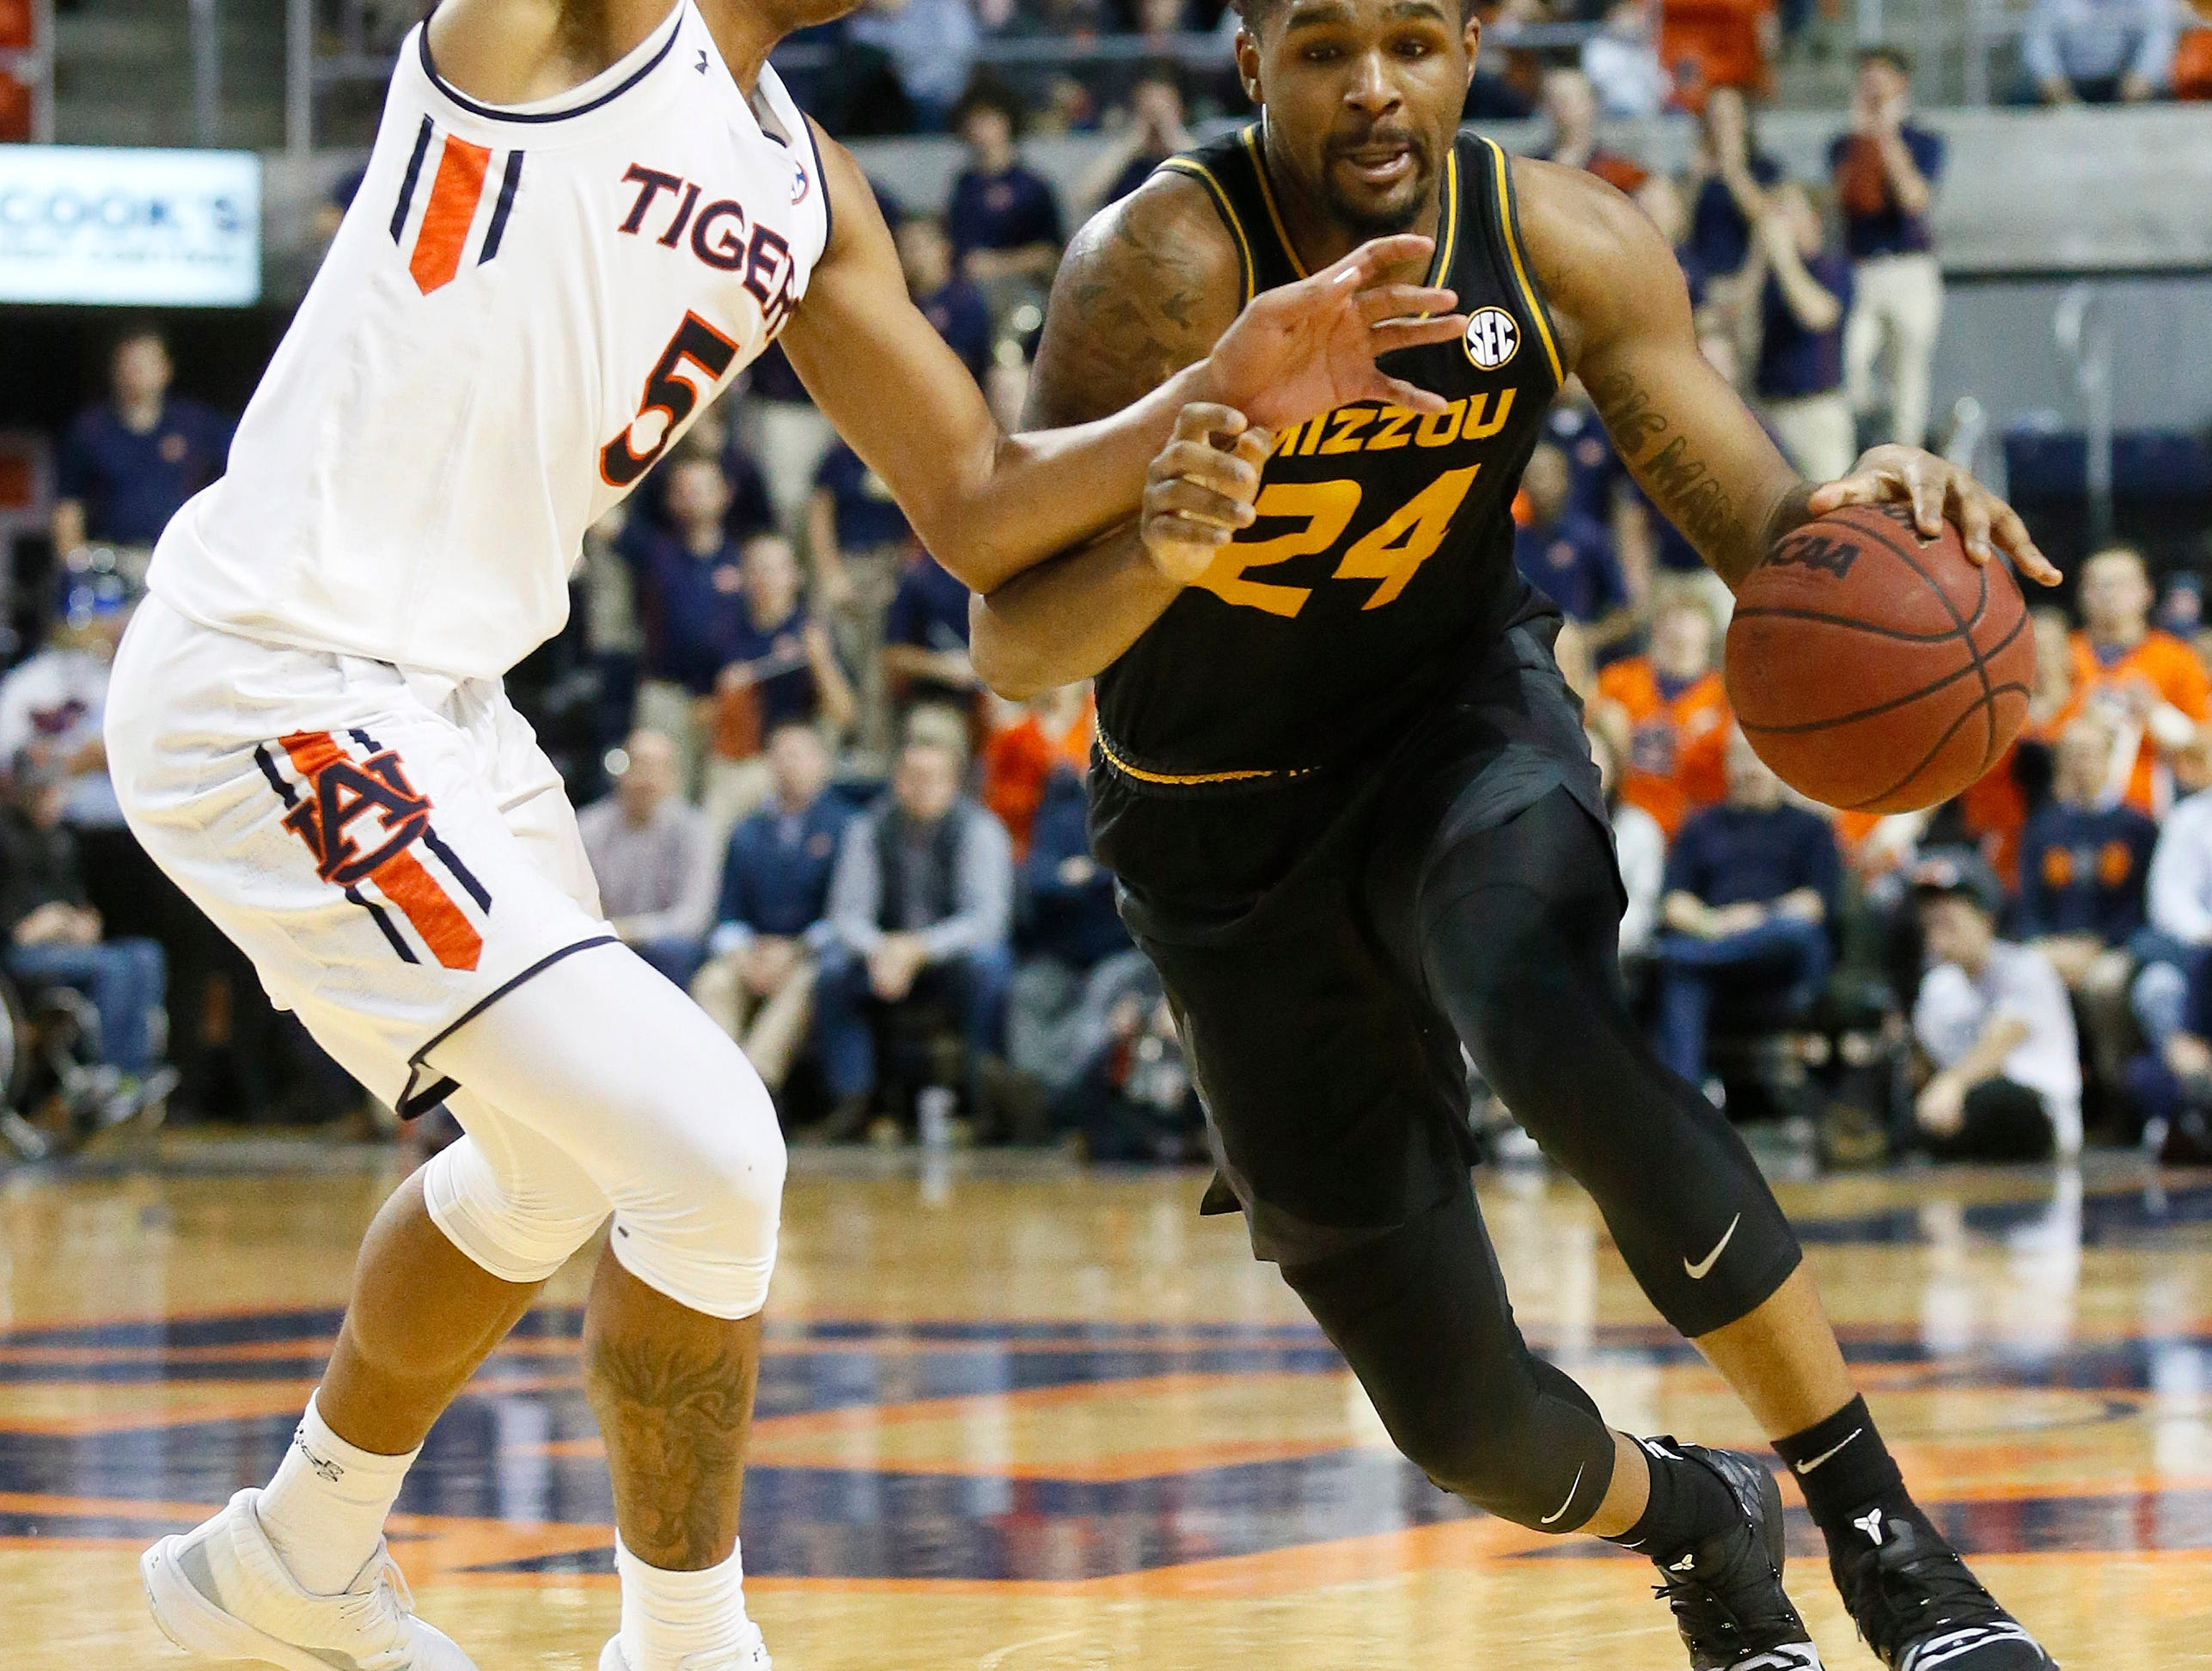 Jan 30, 2019; Auburn, AL, USA; Missouri Tigers forward Kevin Puryear (24) drives against Auburn Tigers forward Chuma Okeke (5) during the first half at Auburn Arena. Mandatory Credit: John Reed-USA TODAY Sports